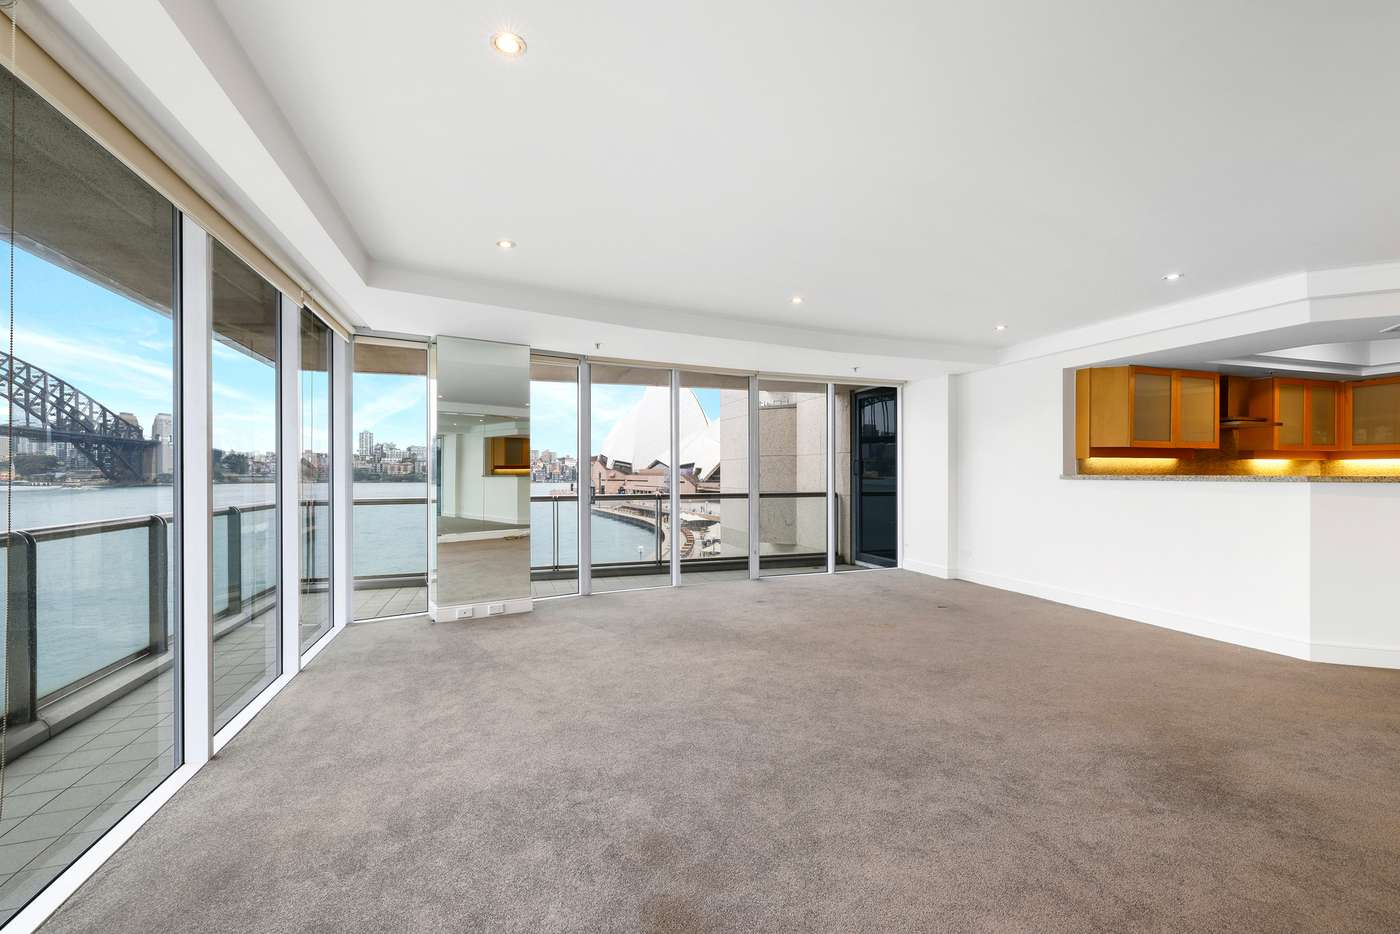 Main view of Homely apartment listing, 29/1 Macquarie Street, Sydney NSW 2000